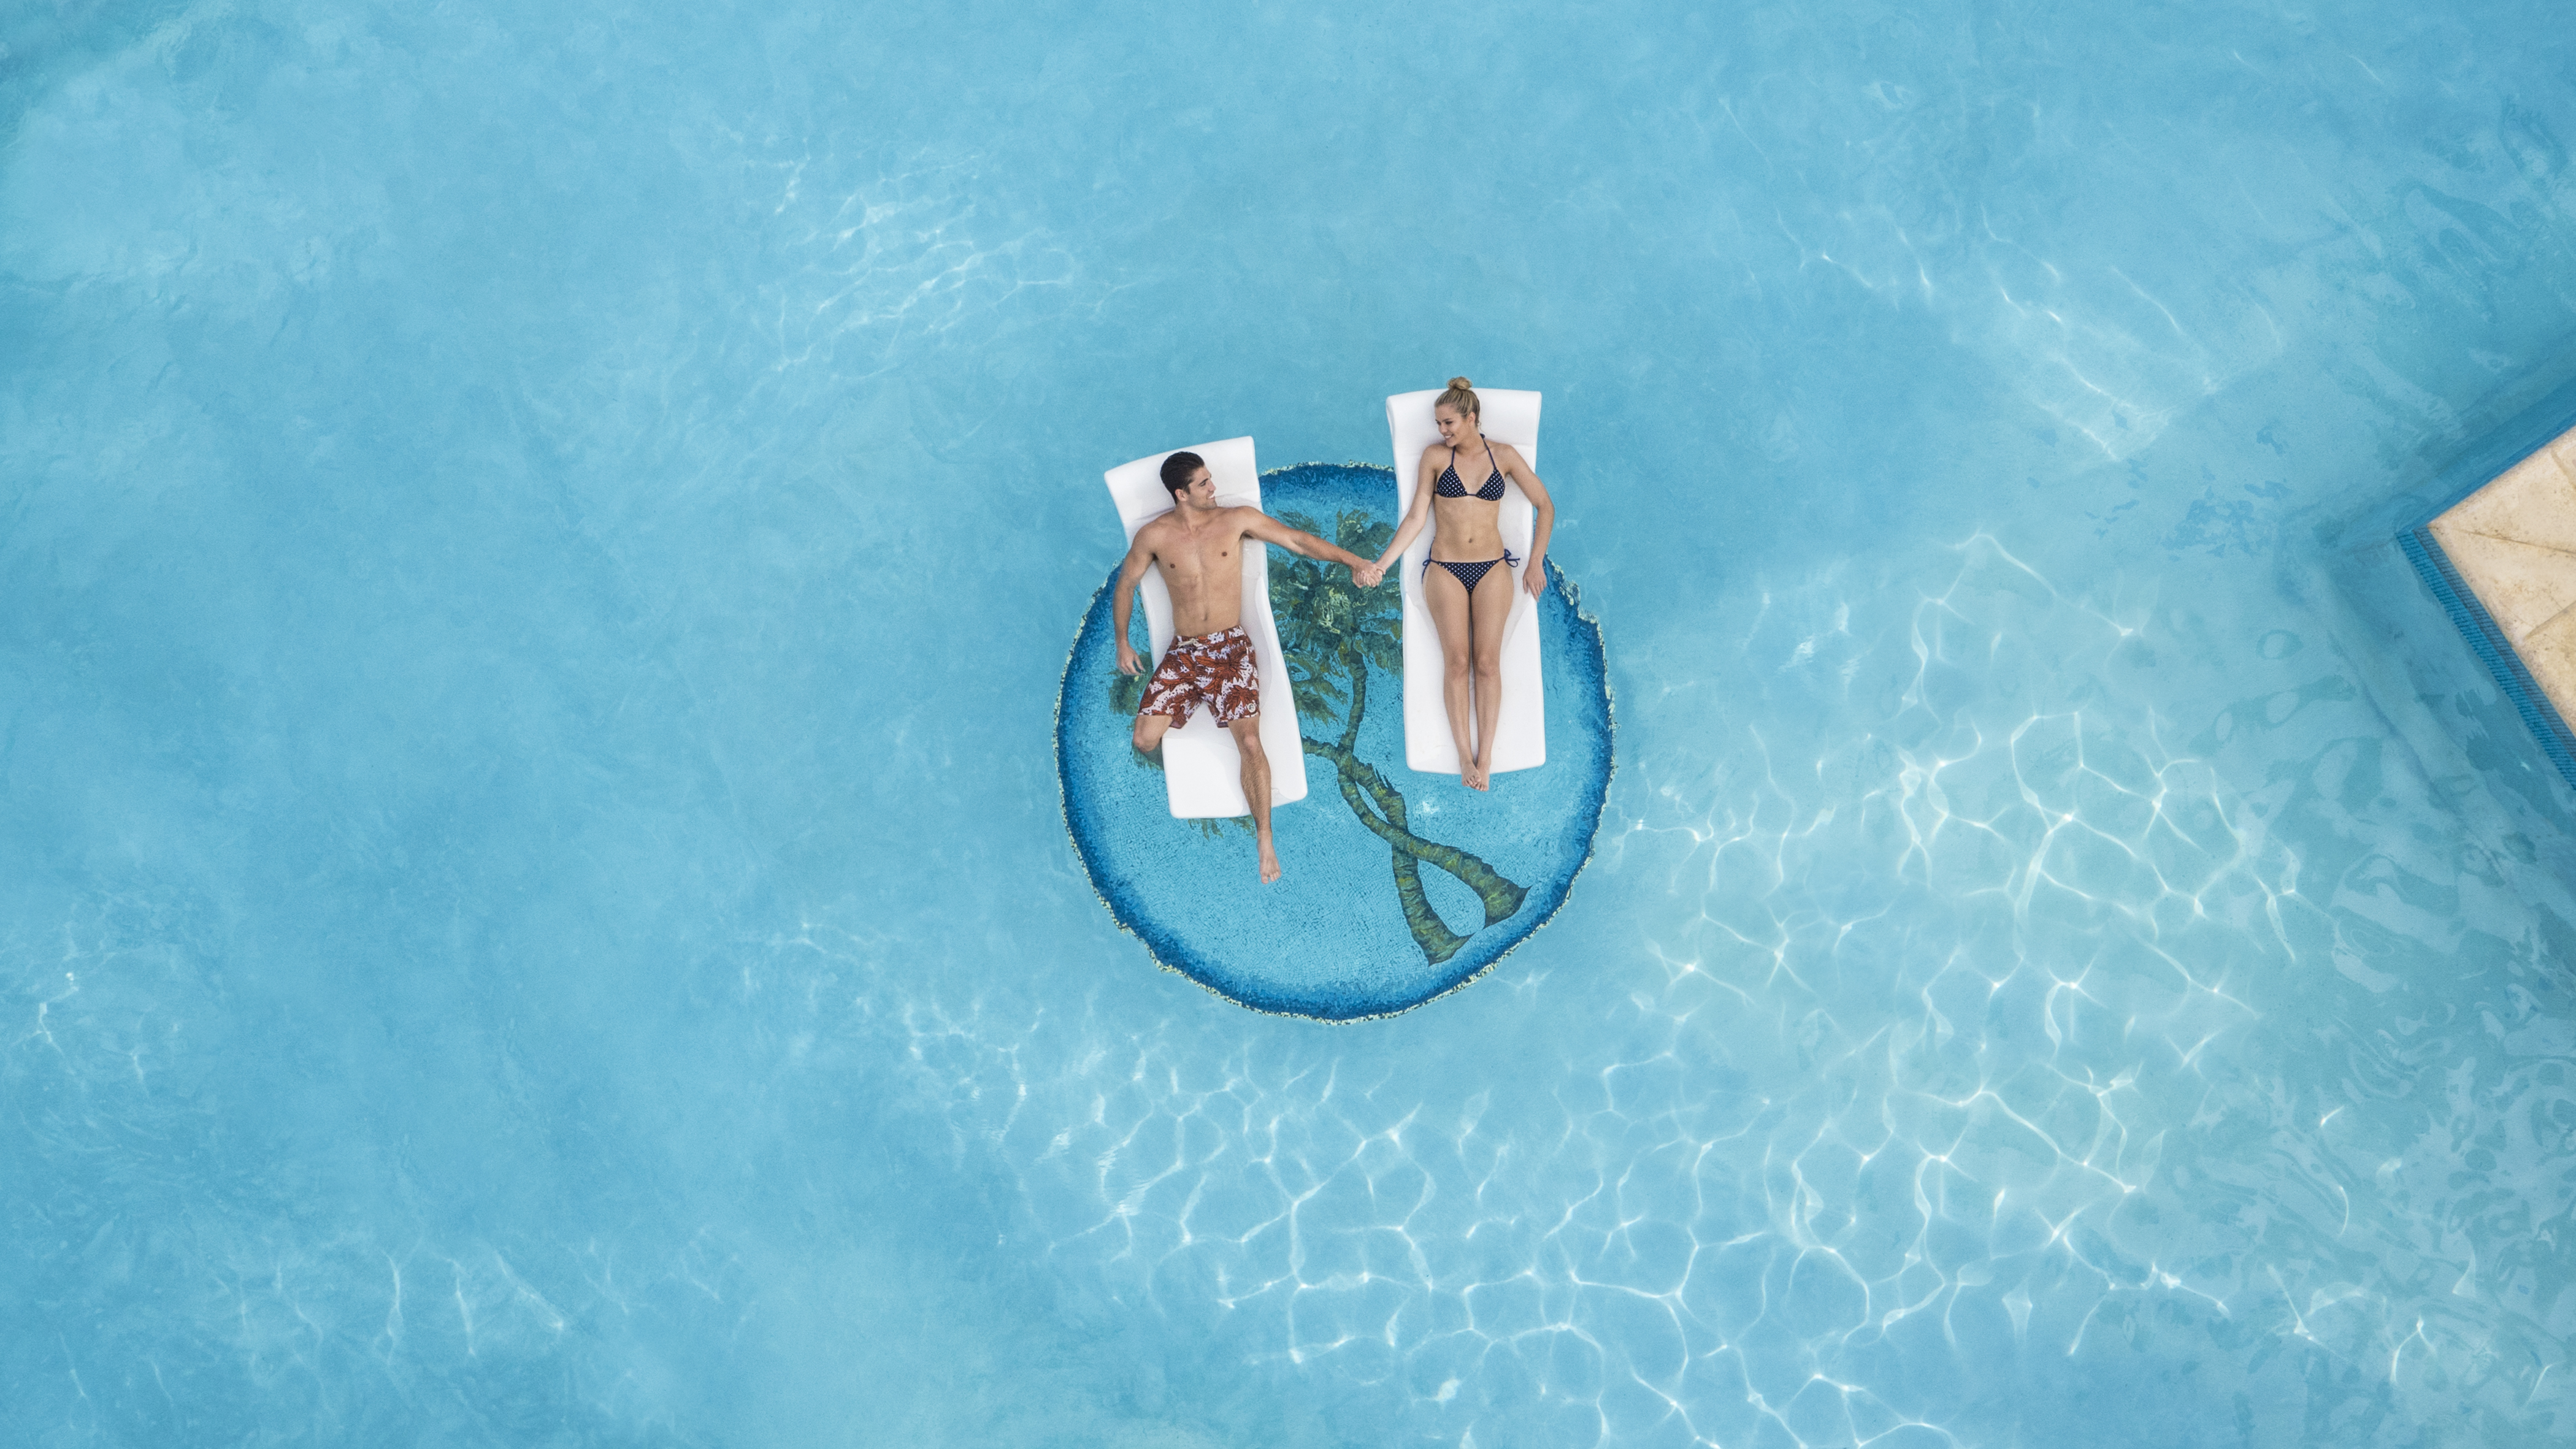 Travel Agency All-Inclusive Resort Couples Negril 02